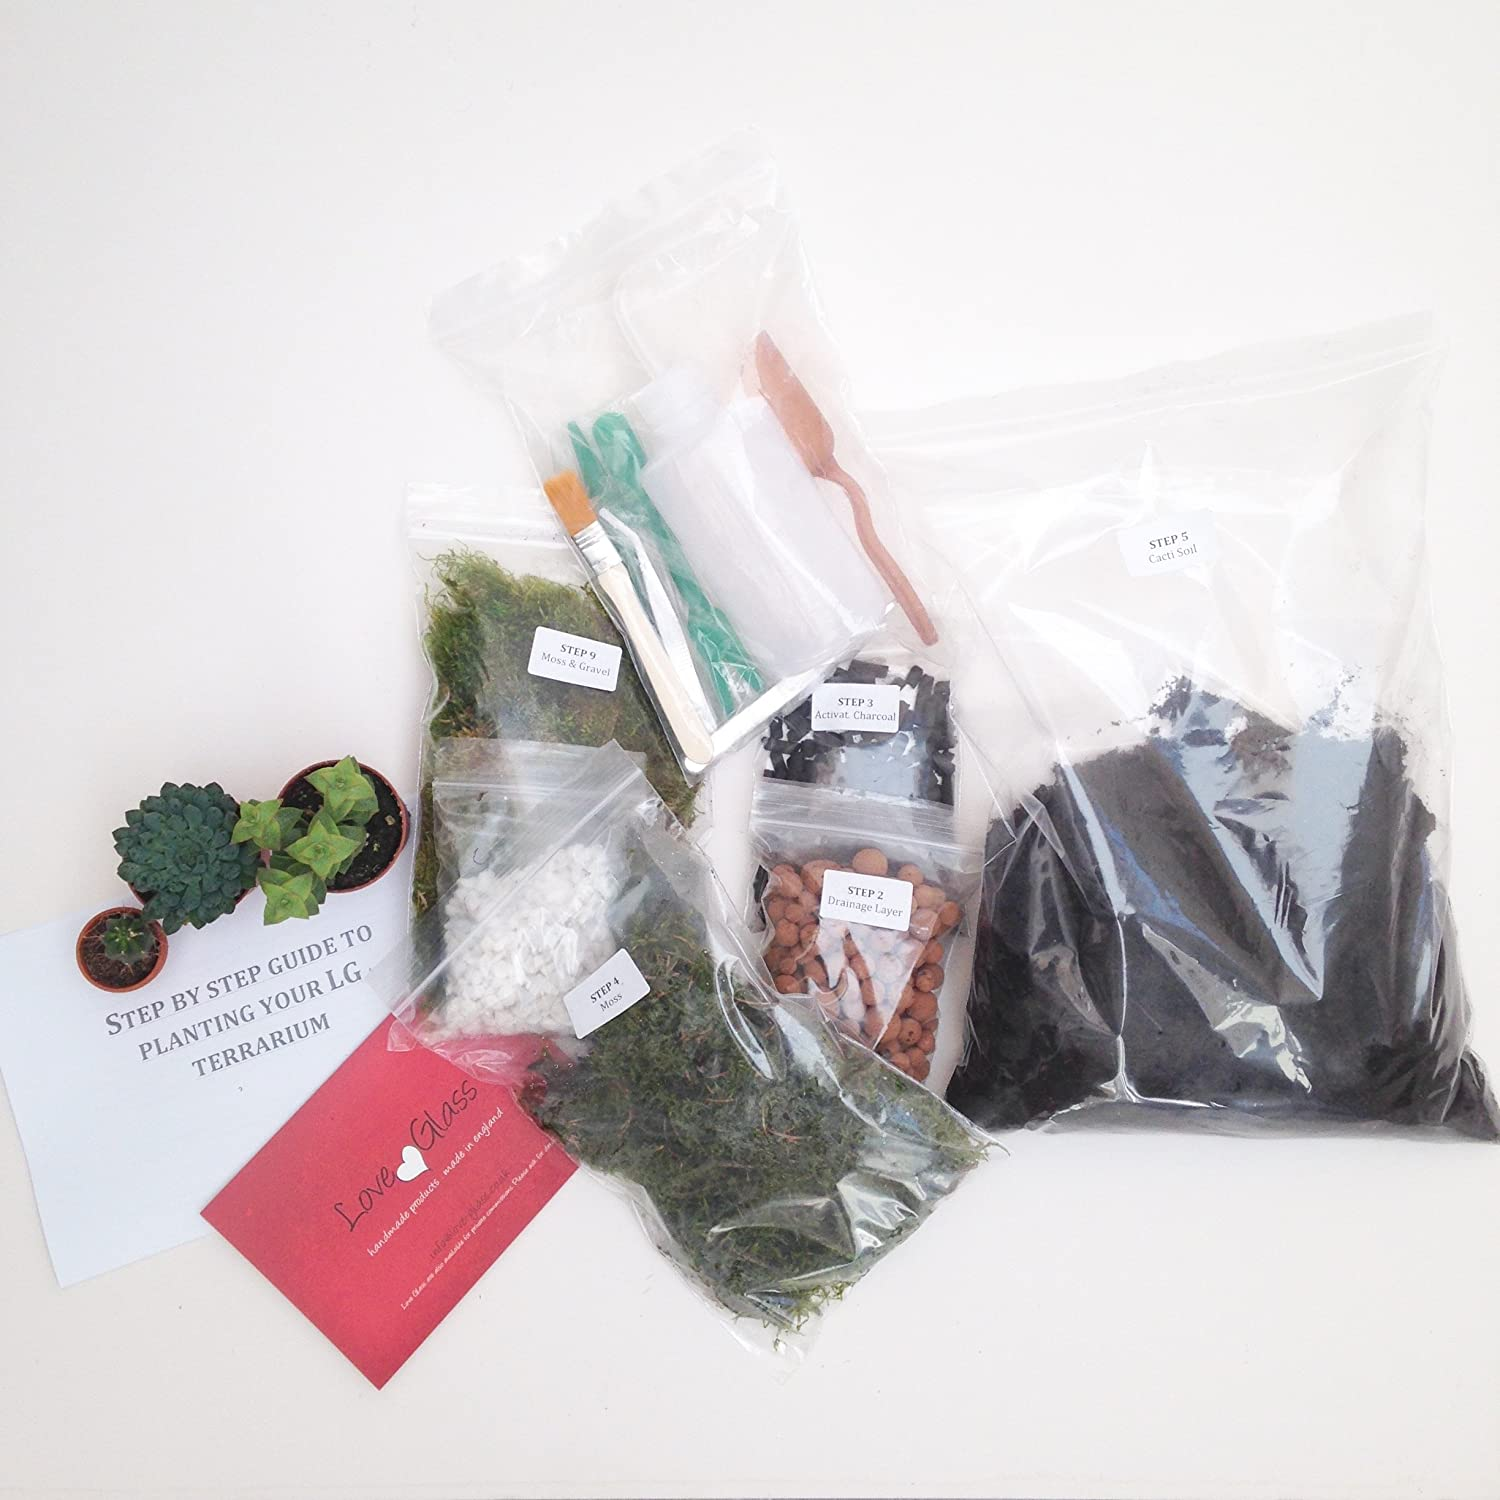 Medium with Tools & Plants Christmas Premium Terrarium Kit with Beautiful Reindeer Moss Limited Collection Packed and Made in England (Terrarium Kit with Terrarium)